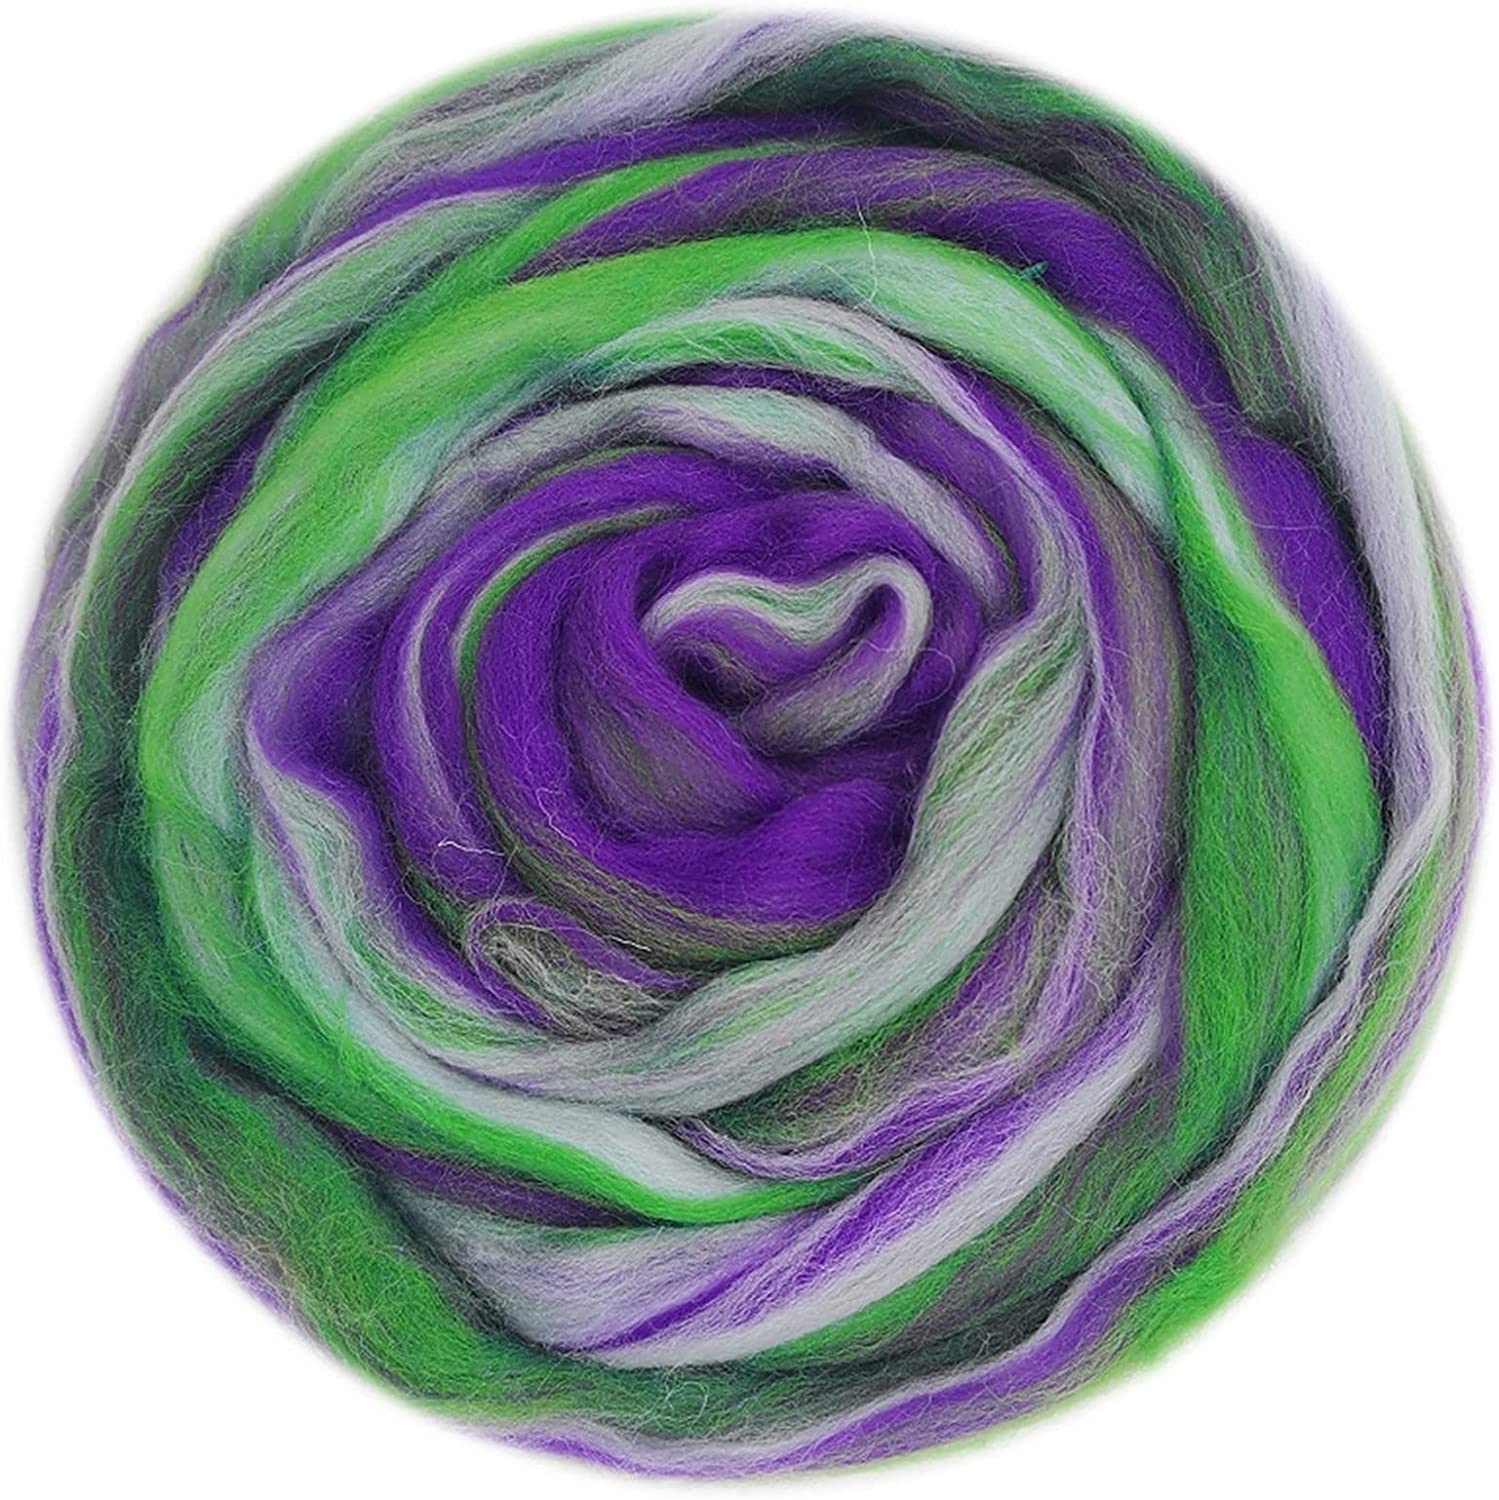 LJLWX Blended Wool roving Roving Mixed Max 80% OFF 50g Han Inexpensive